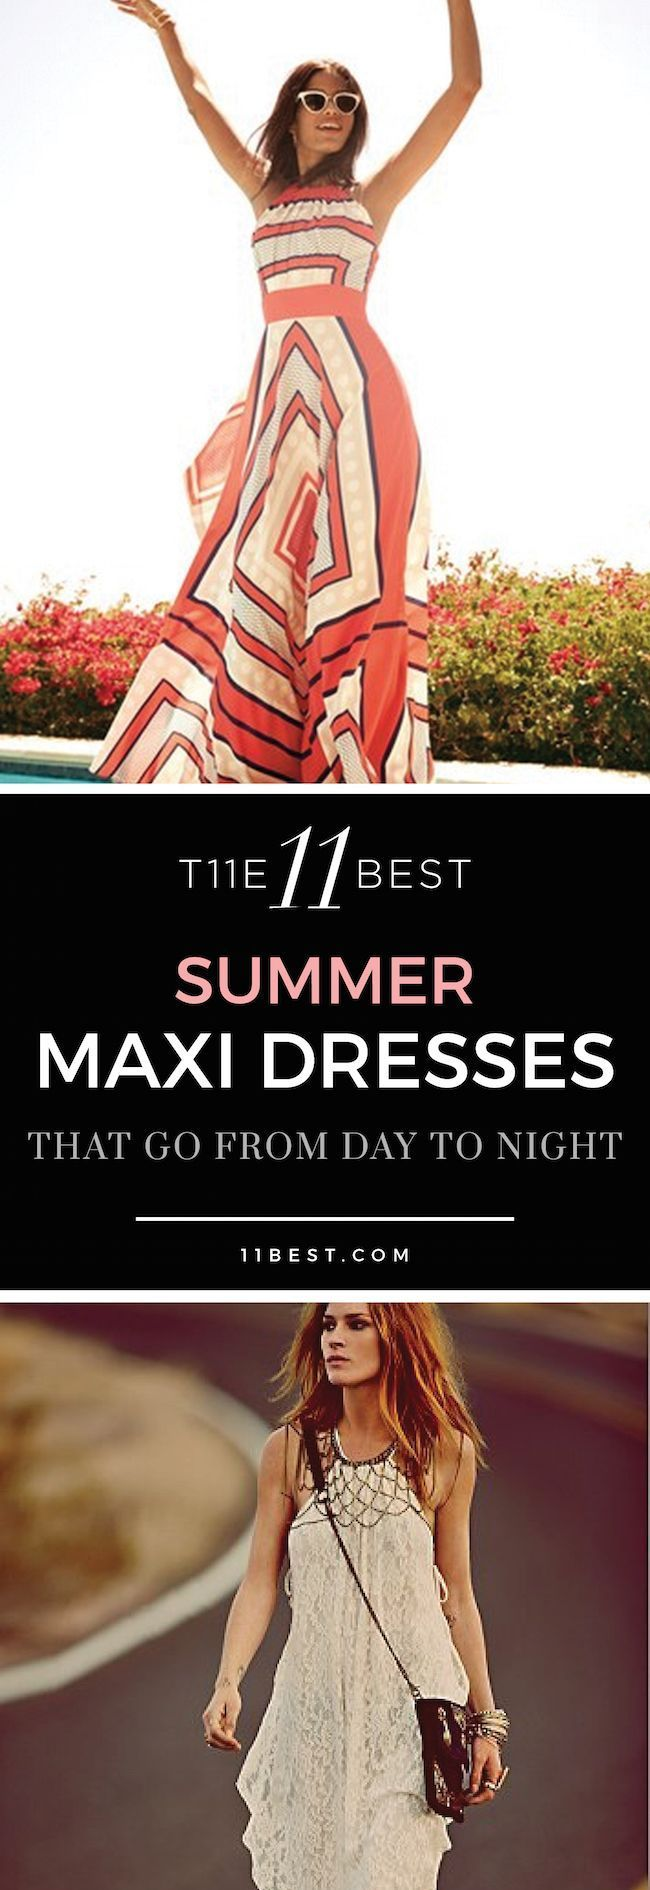 The 11 Best Summer Maxi Dresses